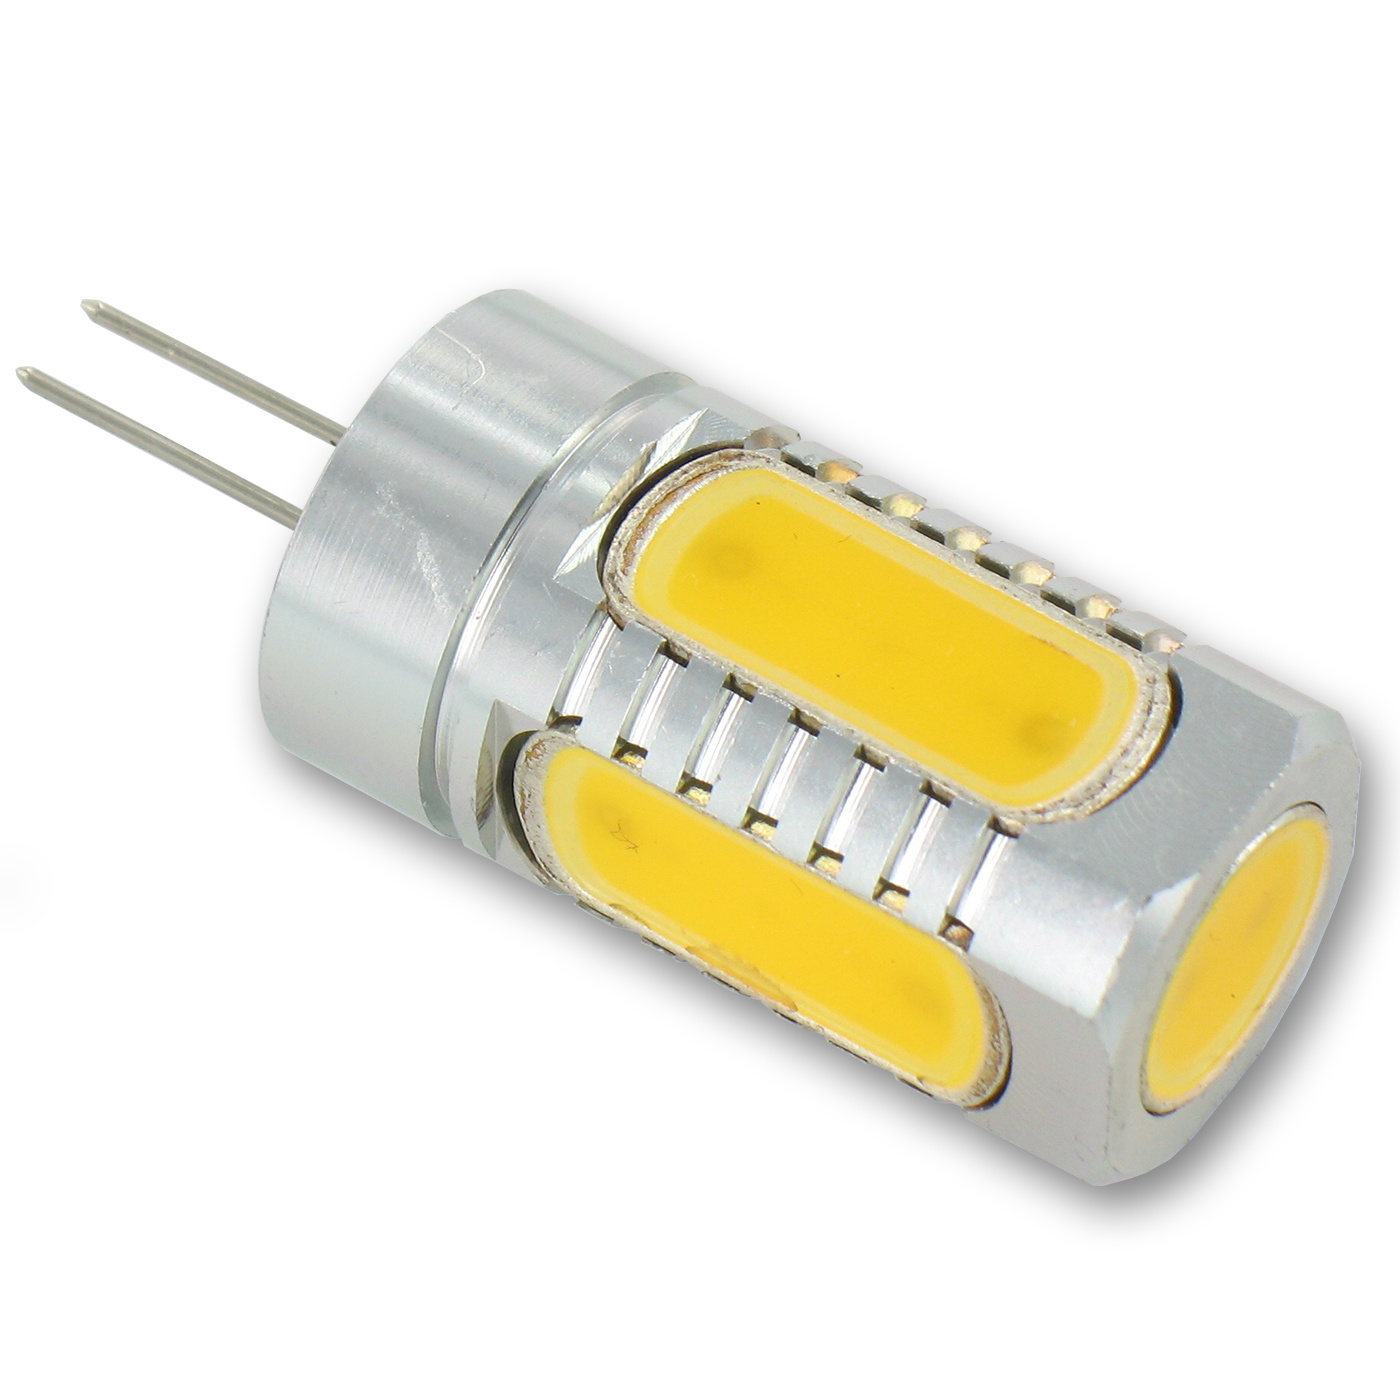 Led Lamp G4 12v Warm Wit 7 5 Watt Dimbaar Ledstripxl